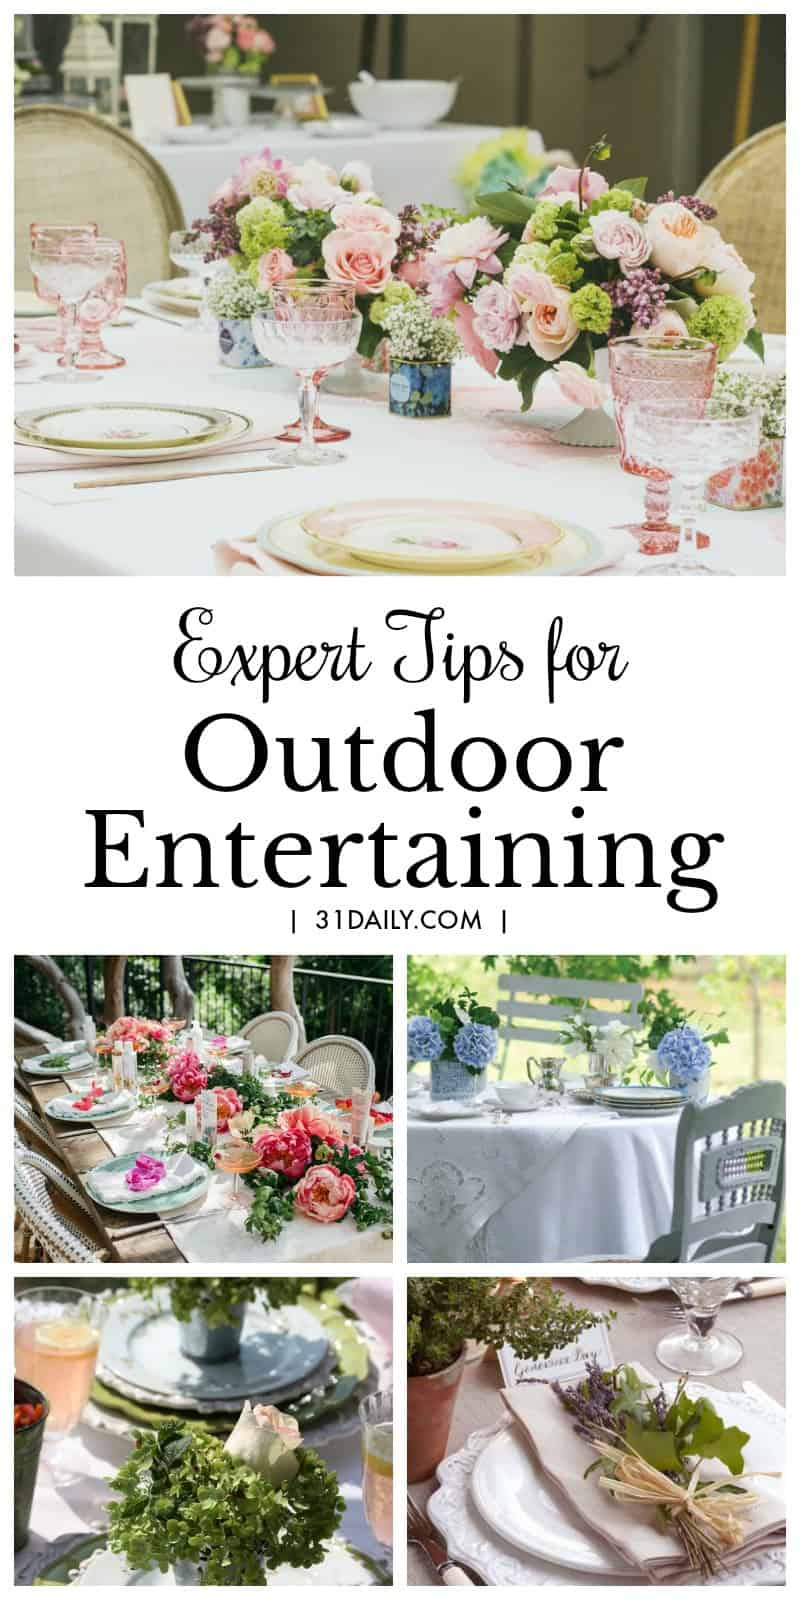 Experts Tips for Outdoor Entertaining | 31Daily.com